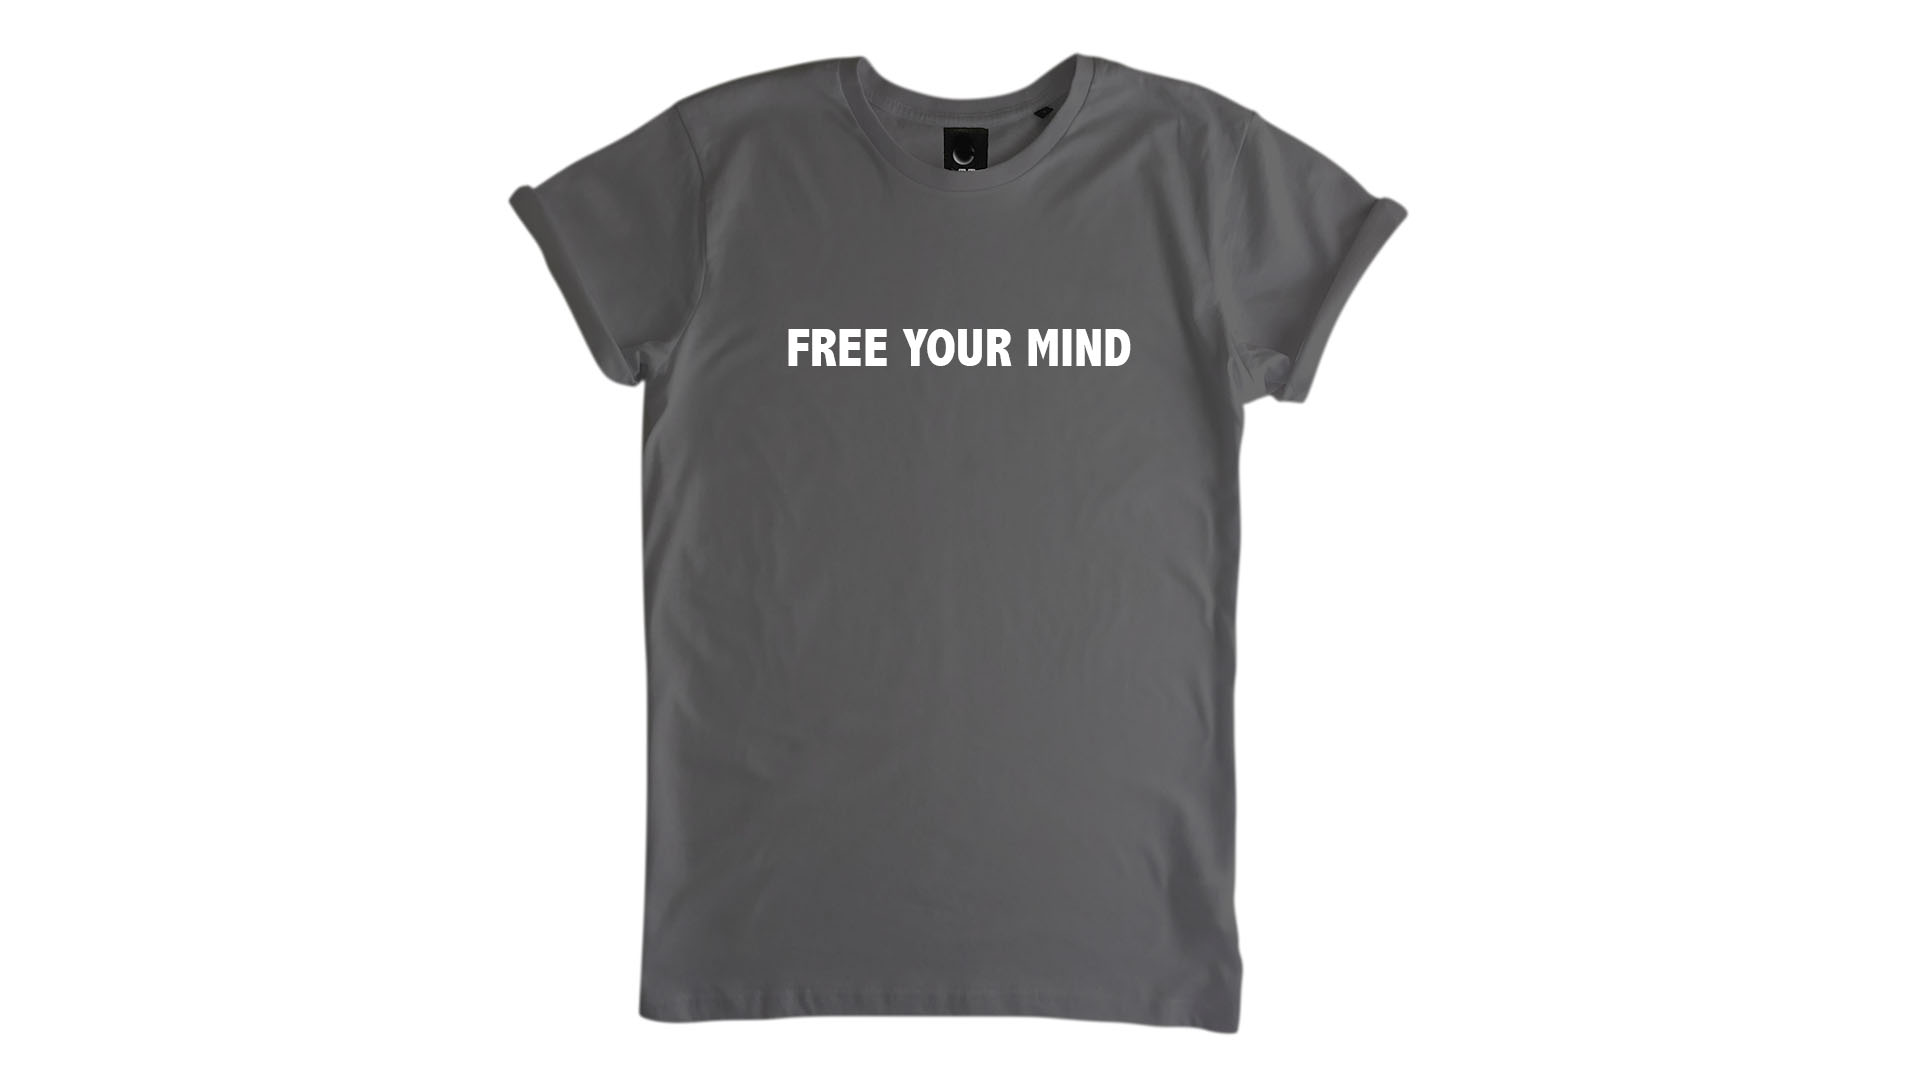 LiveLearn.Yoga Yoga T-Shirt Organic Cotton Free Your Mind Grey